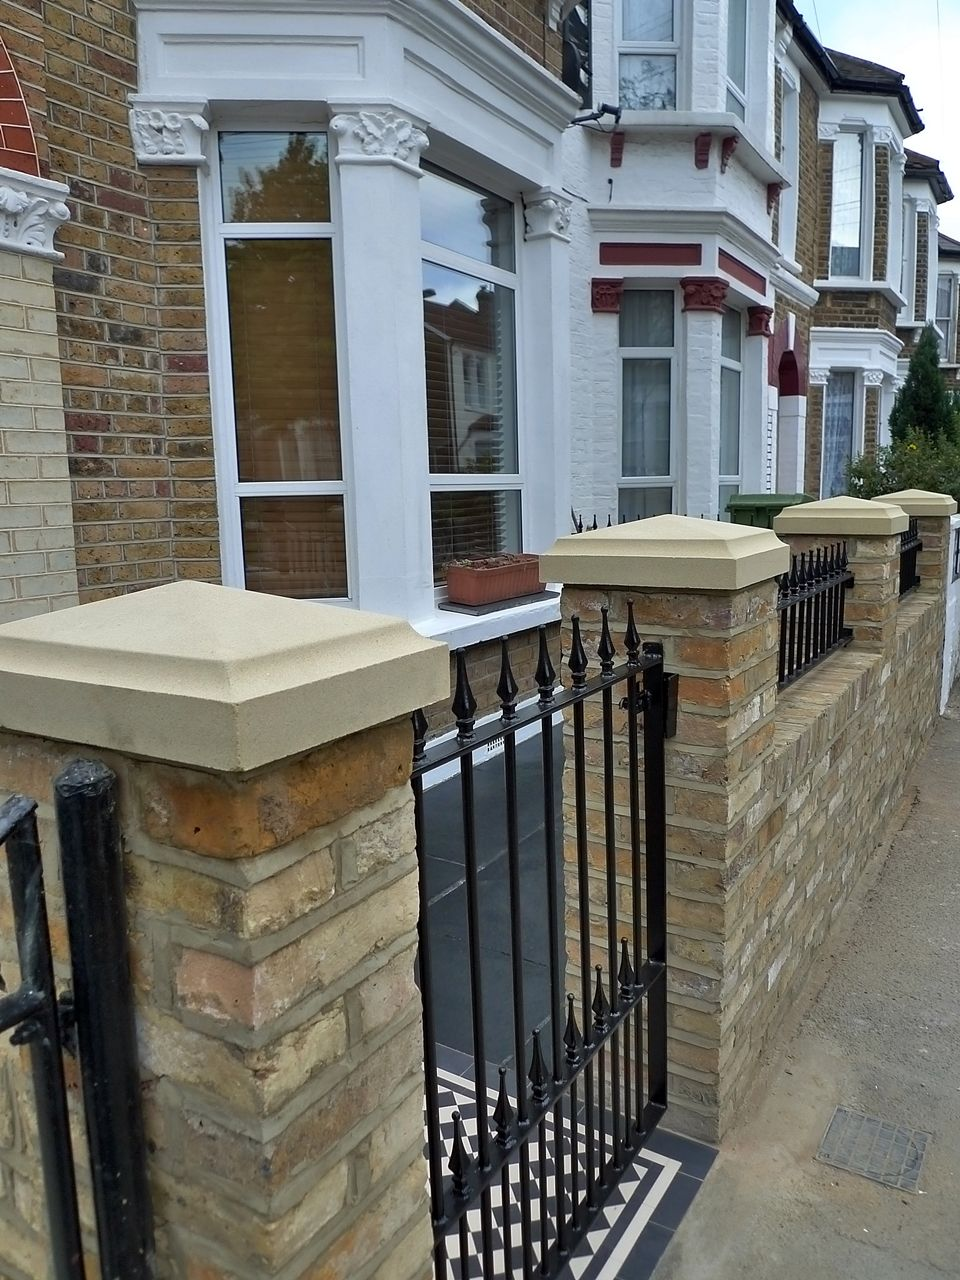 Victorian front garden design london stock second hand for Victorian garden walls designs